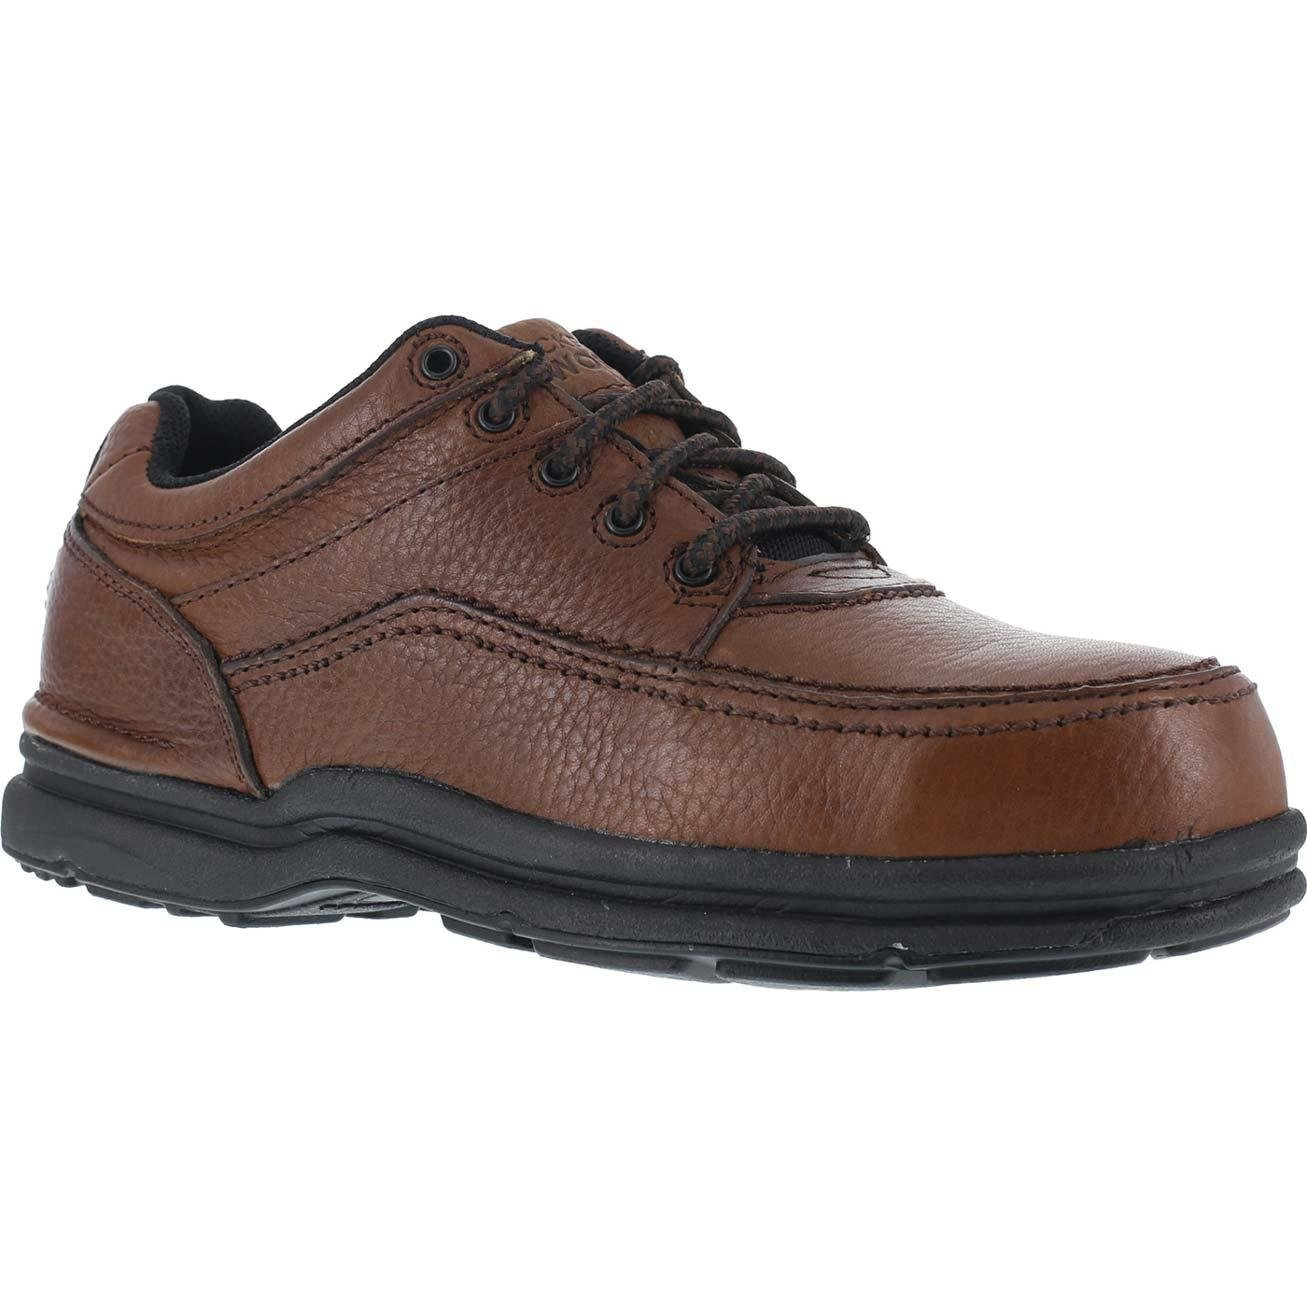 Rockport Shoes: Men's Steel Toe ESD Work Shoes RK6762-8EW